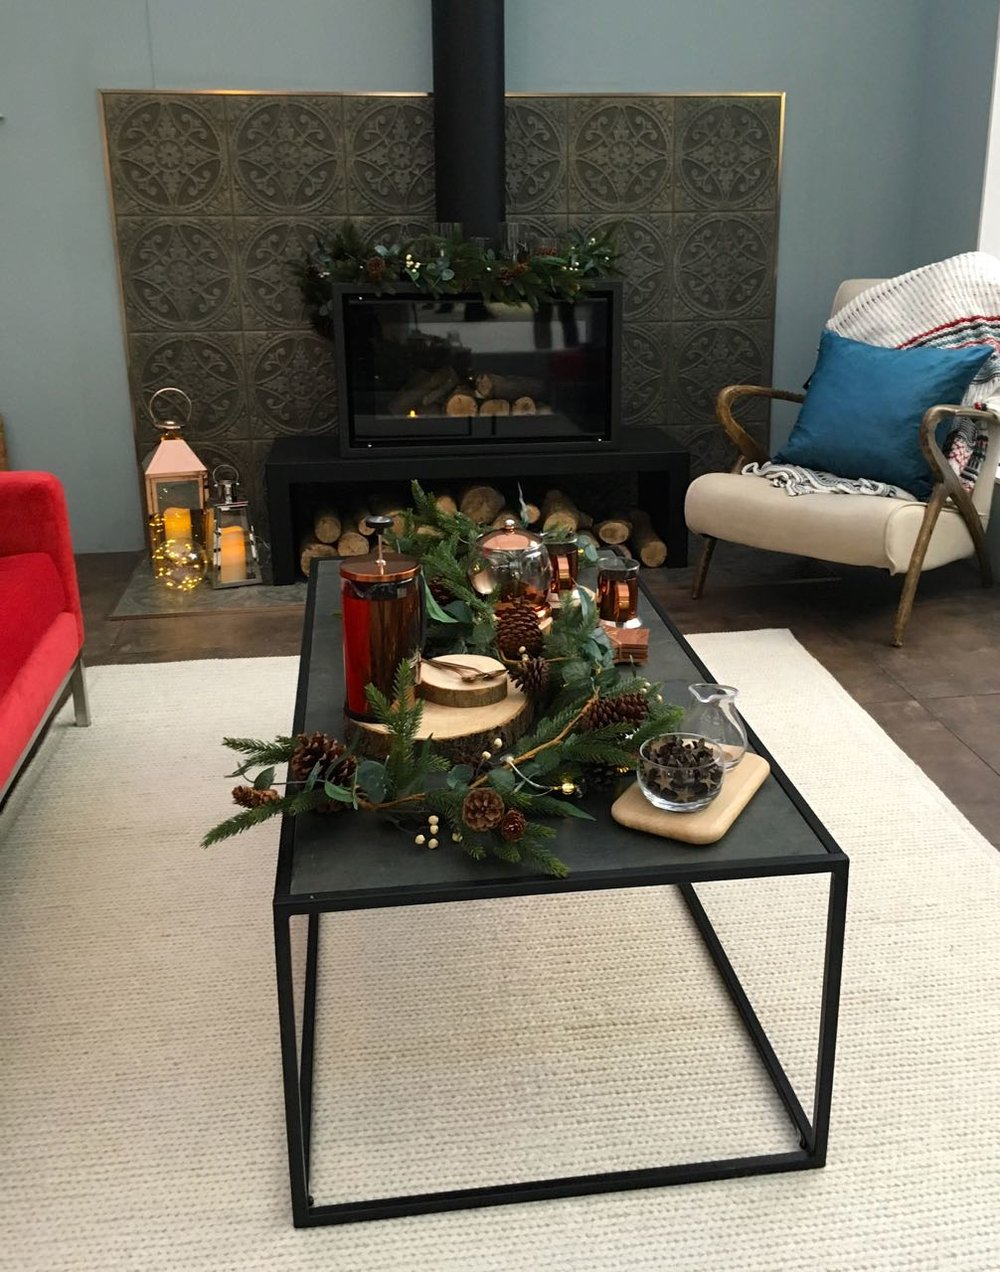 The wood burner and black metal coffee table  in this room set at the Ideal Home Show at Christmas